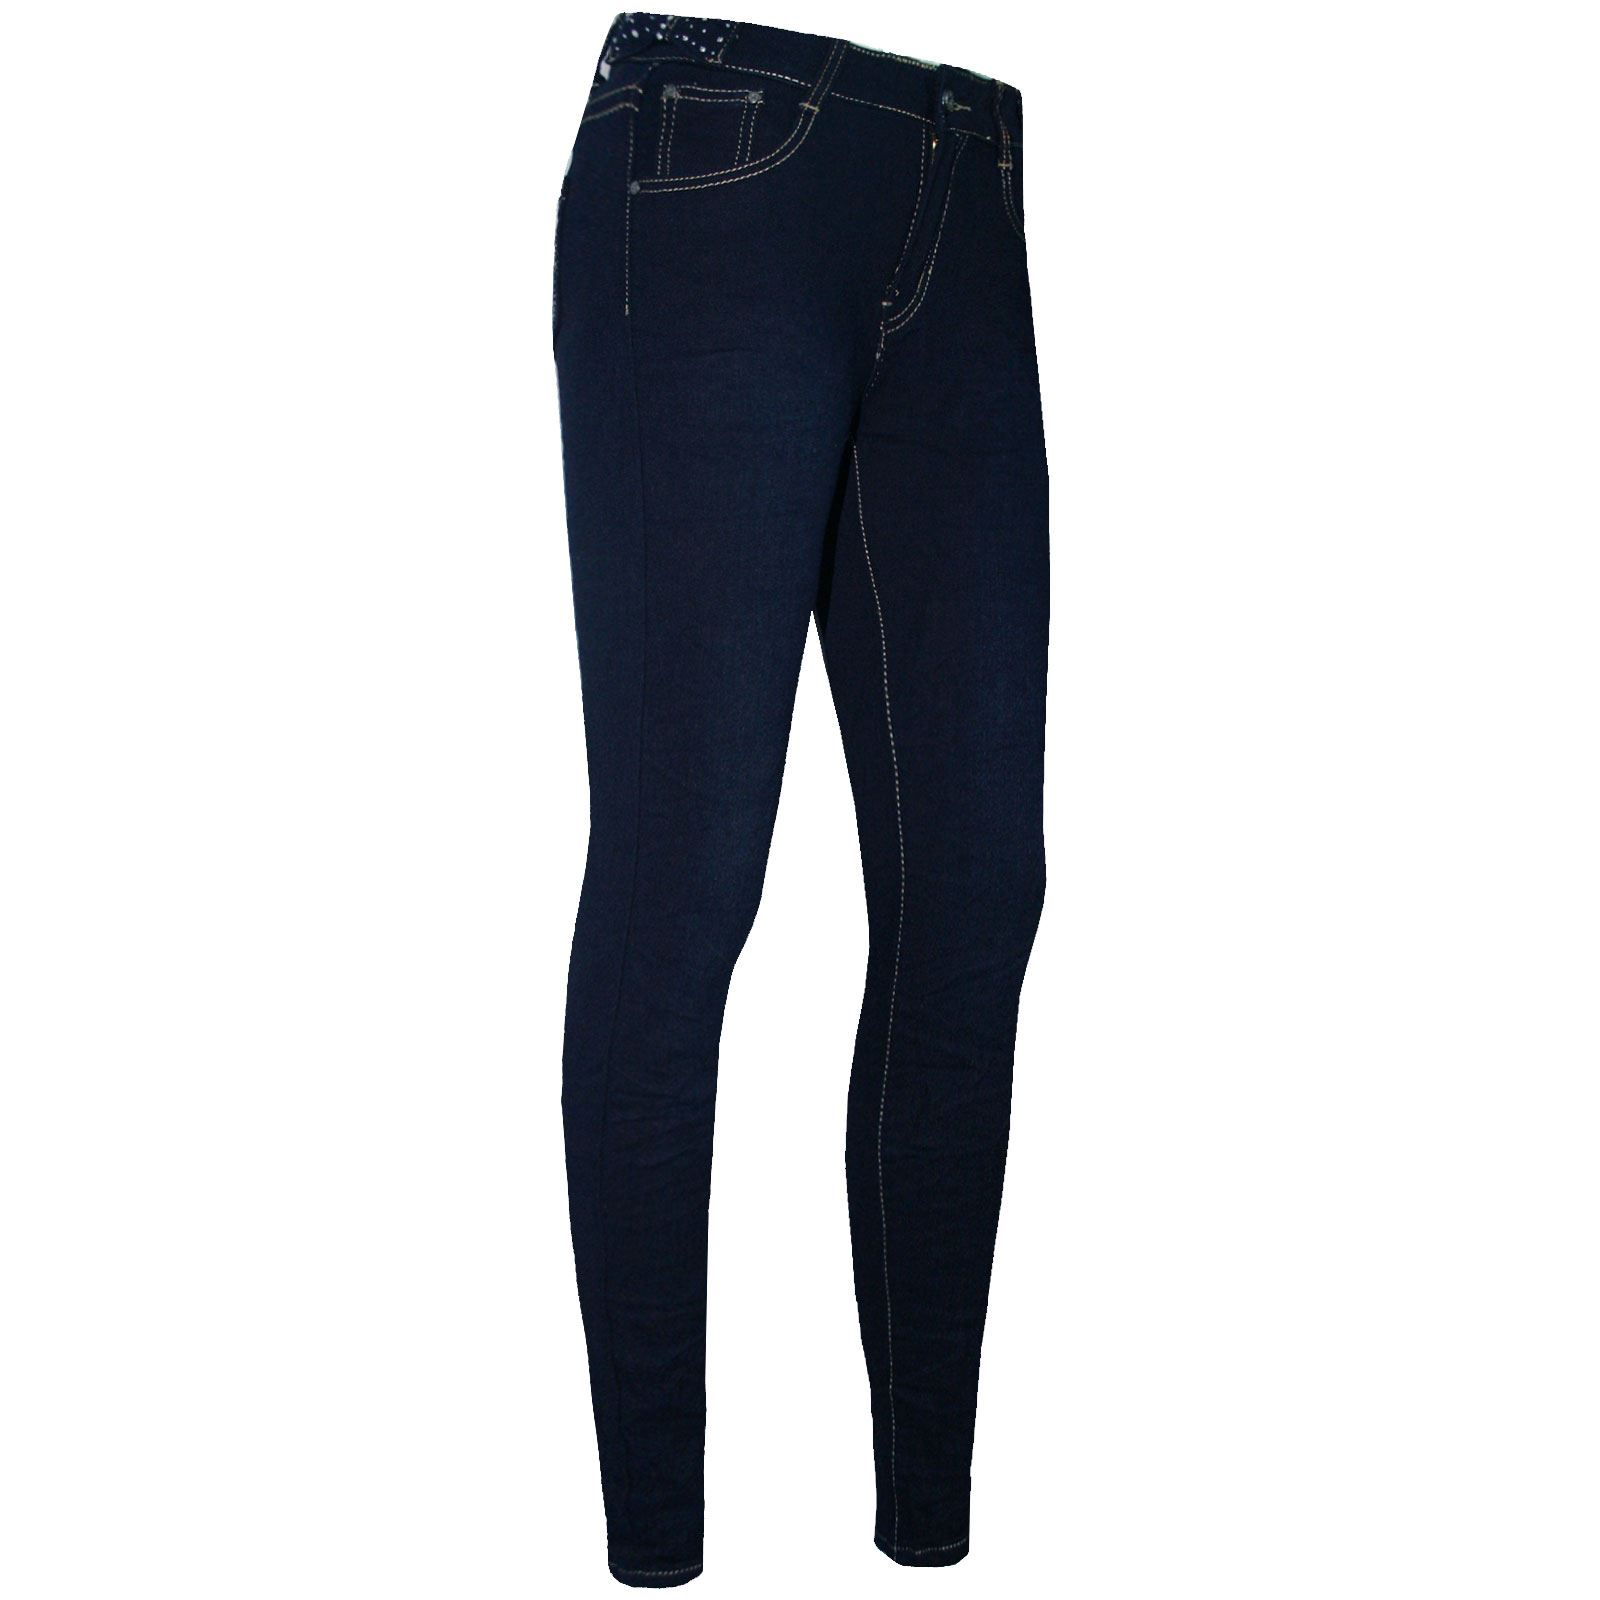 NYDJ Teresa Womens Denim Mid-Rise Trouser Jeans. Sold by BHFO. $ $ NYDJ Plus Womens Slimming Fit Manhattan Beach Trouser Jeans. Sold by BHFO. $ $ FIRSTBUY (Clearance)Korea Men Slim Fit Classic Jeans Trousers New .